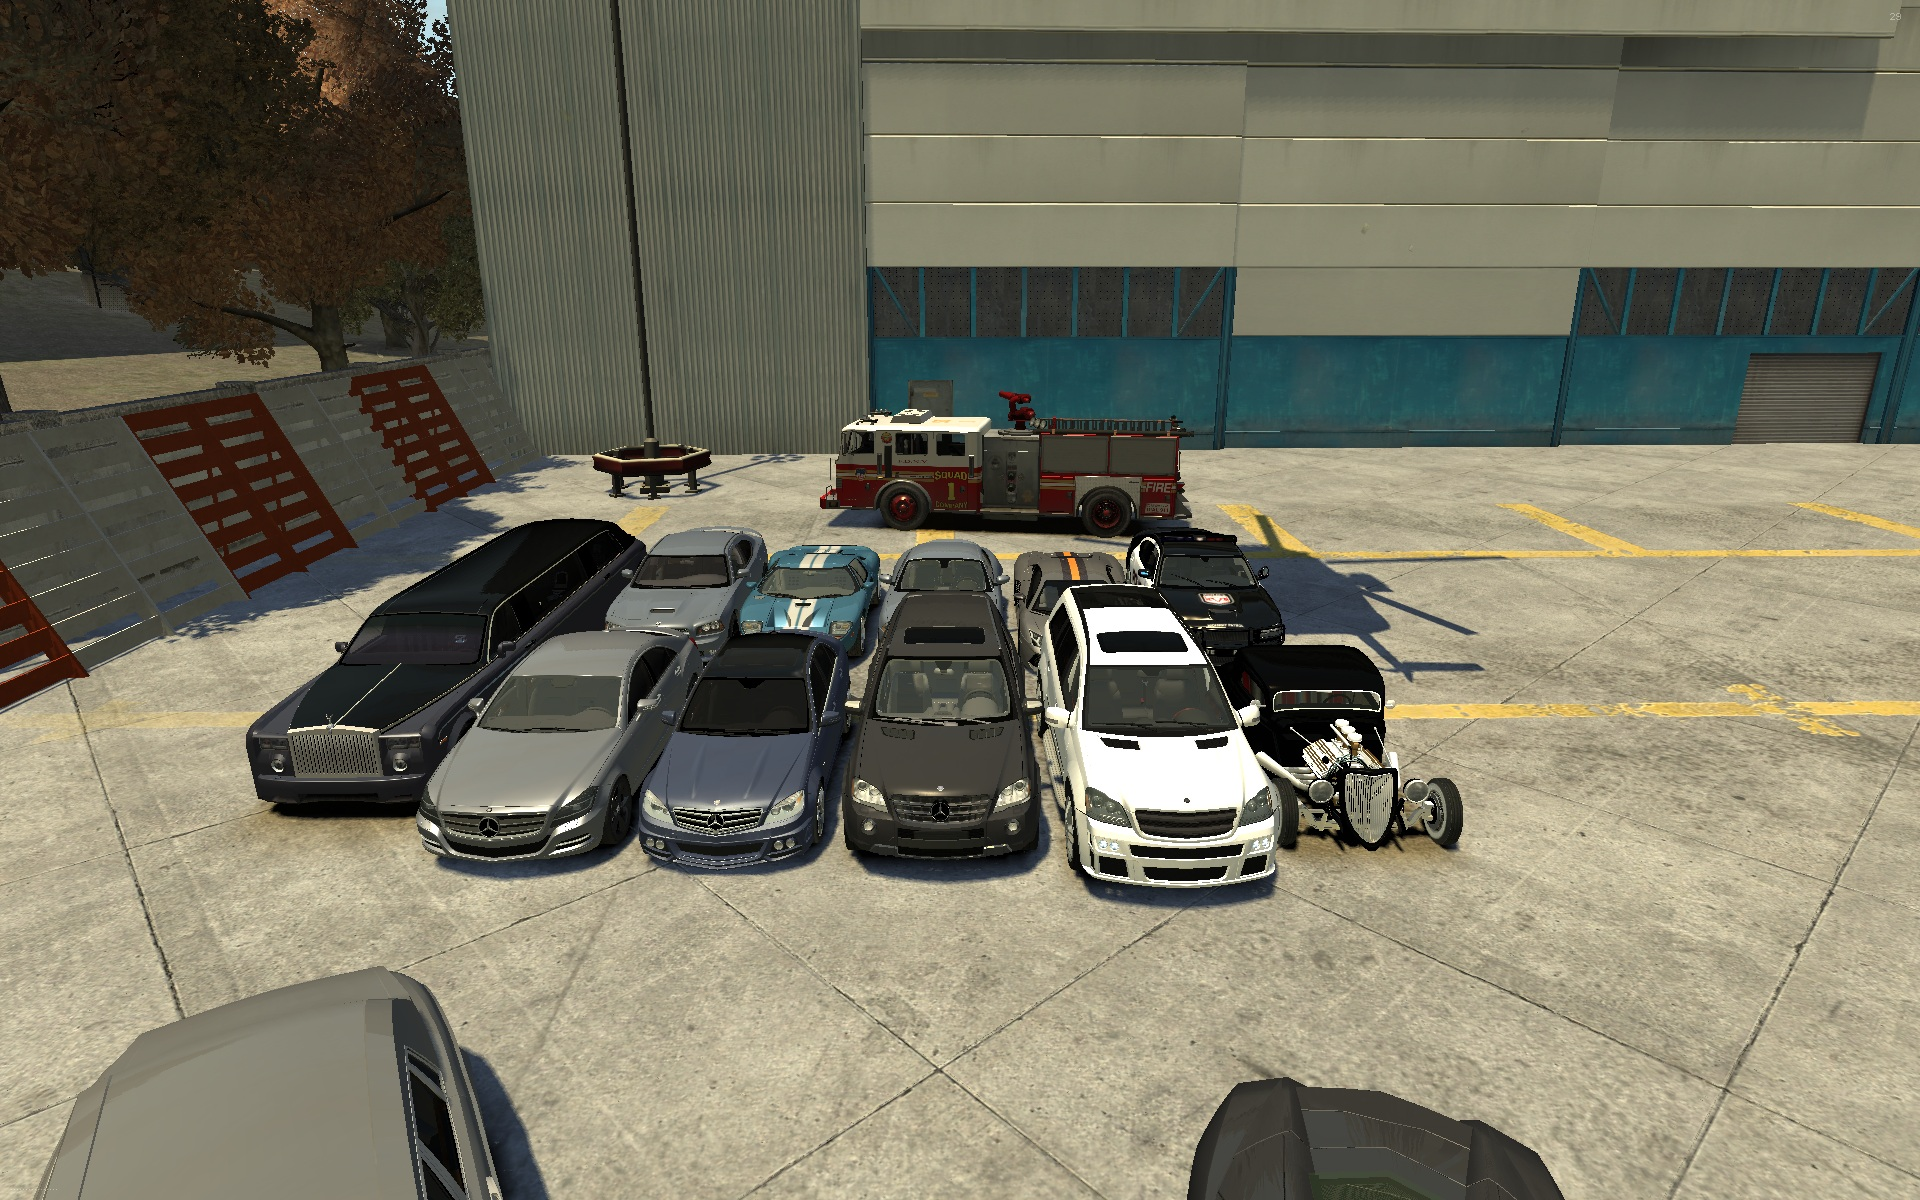 Authentic Car Pack (OIV) GTA V UPDATE 4.0 mod for Grand Theft Auto V - Mod  DB